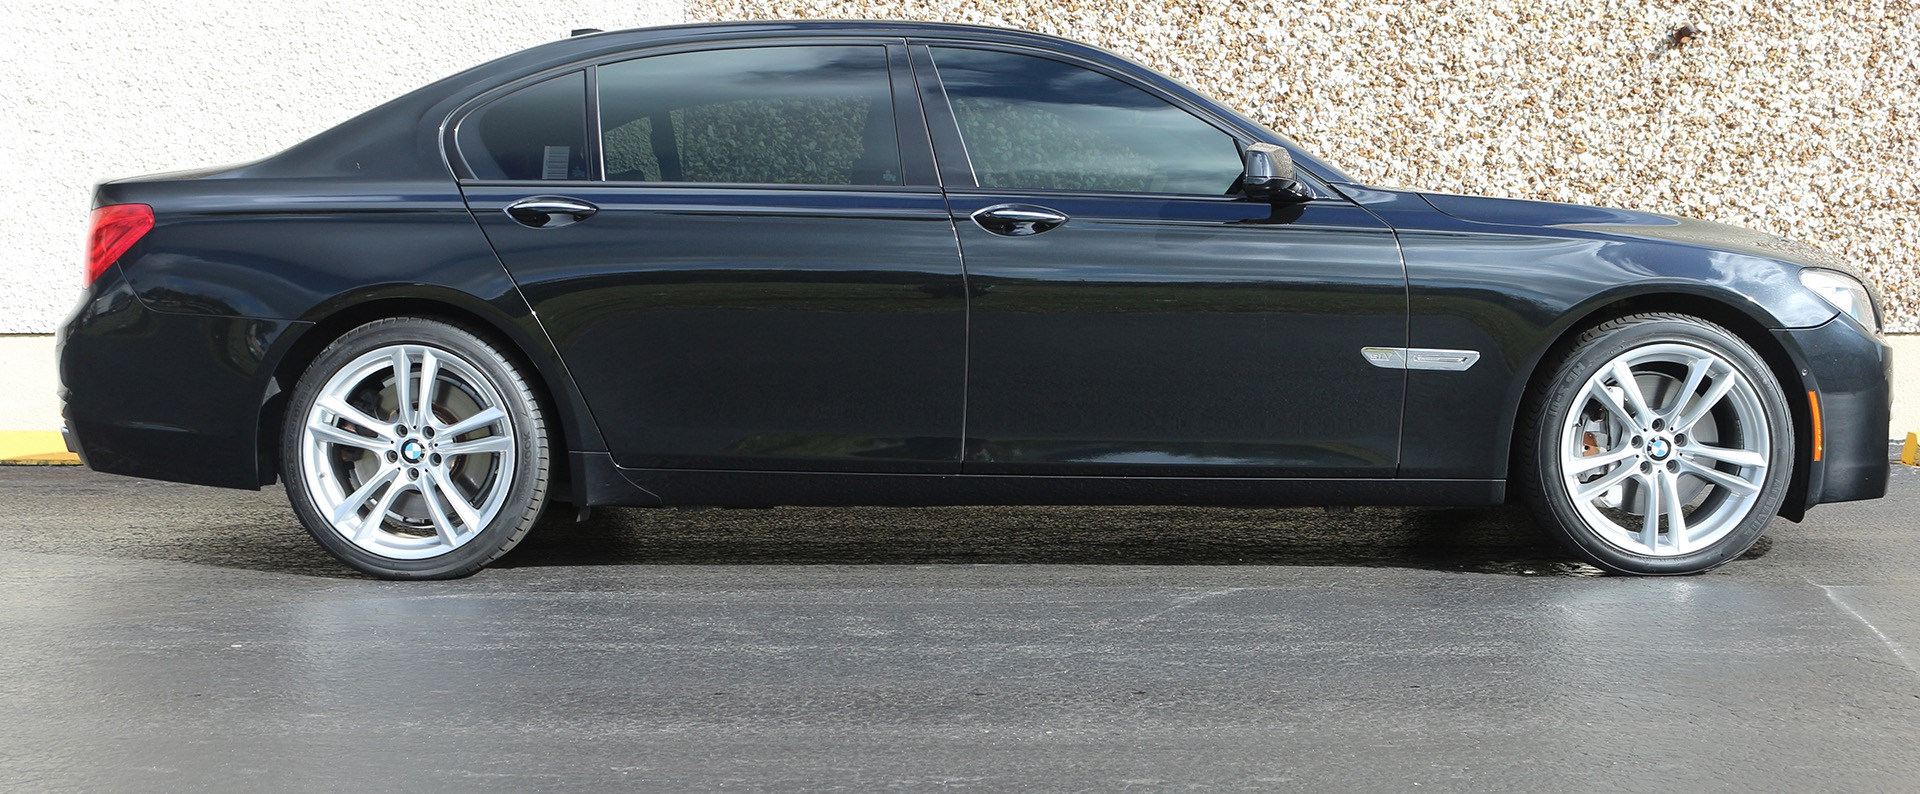 used in for ny bmw sedan sale series pittsford xdrive